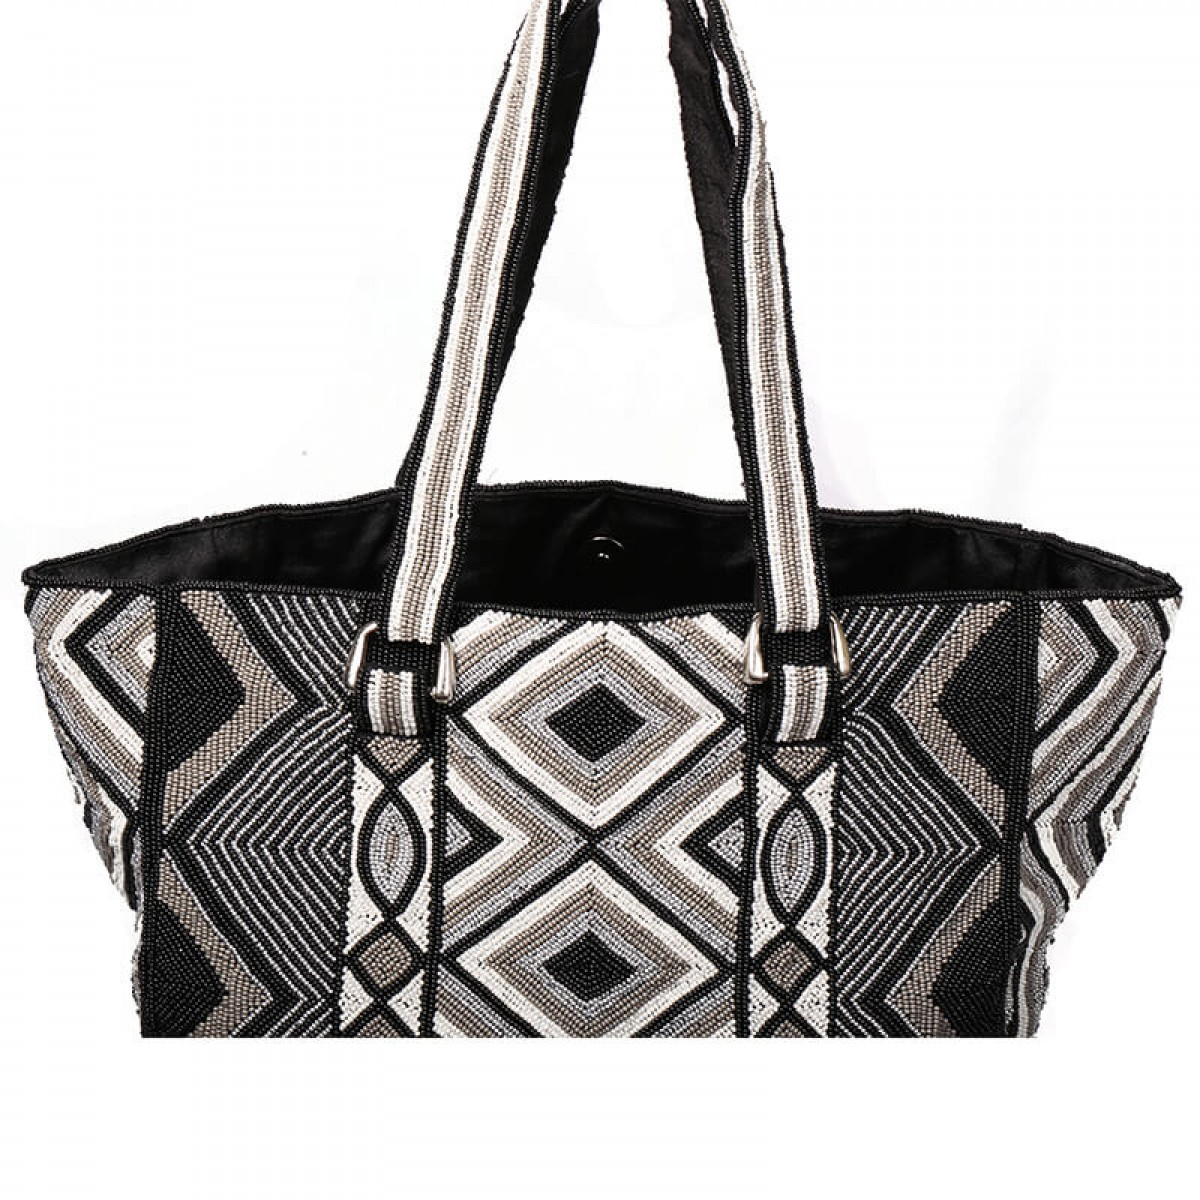 Beaded Tote Bag - Black (Made to Order)